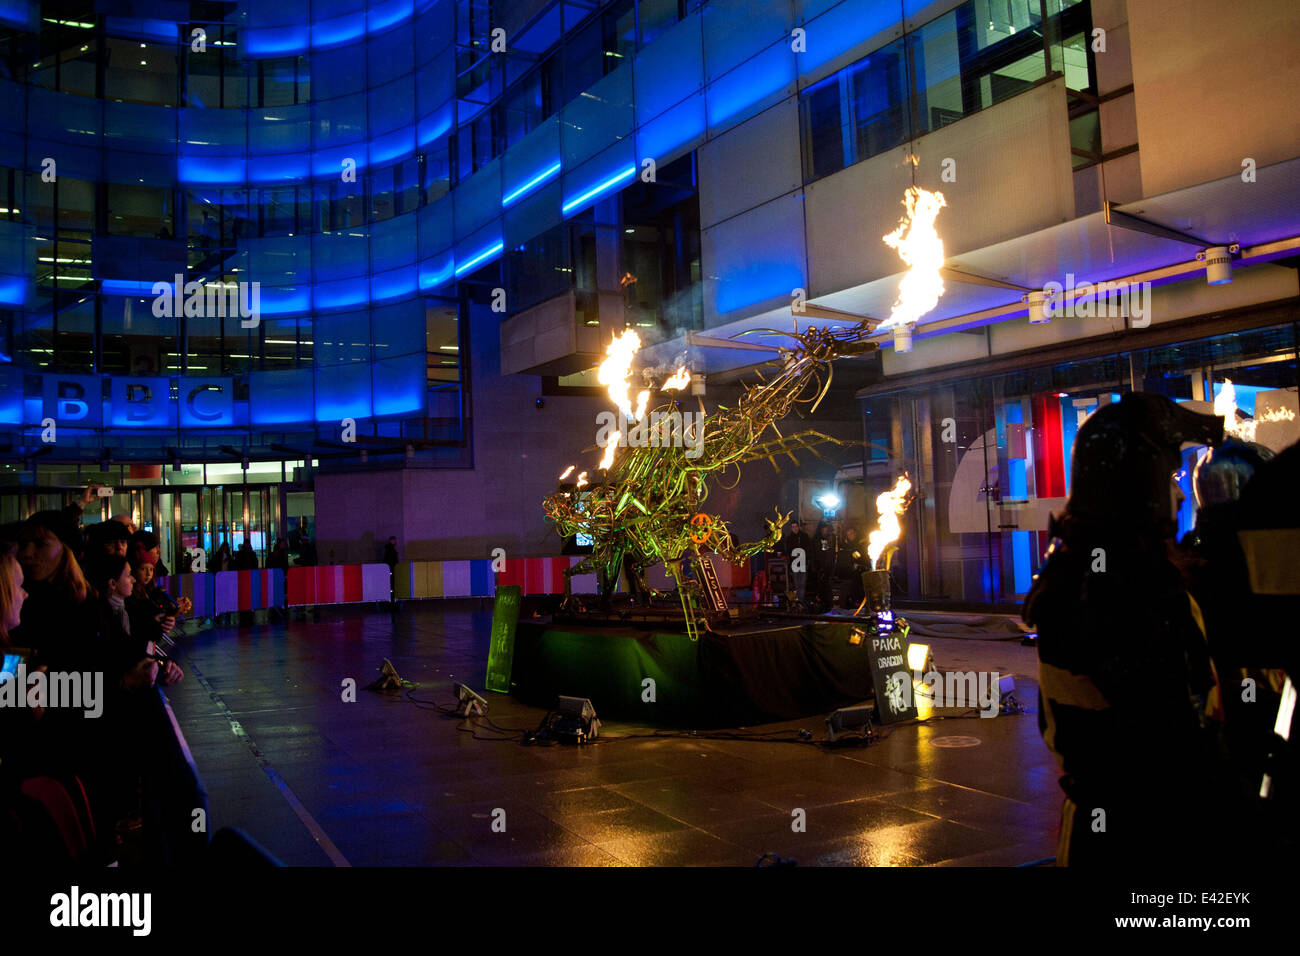 A mechanical fire breathing dragon on 'The One Show' at the